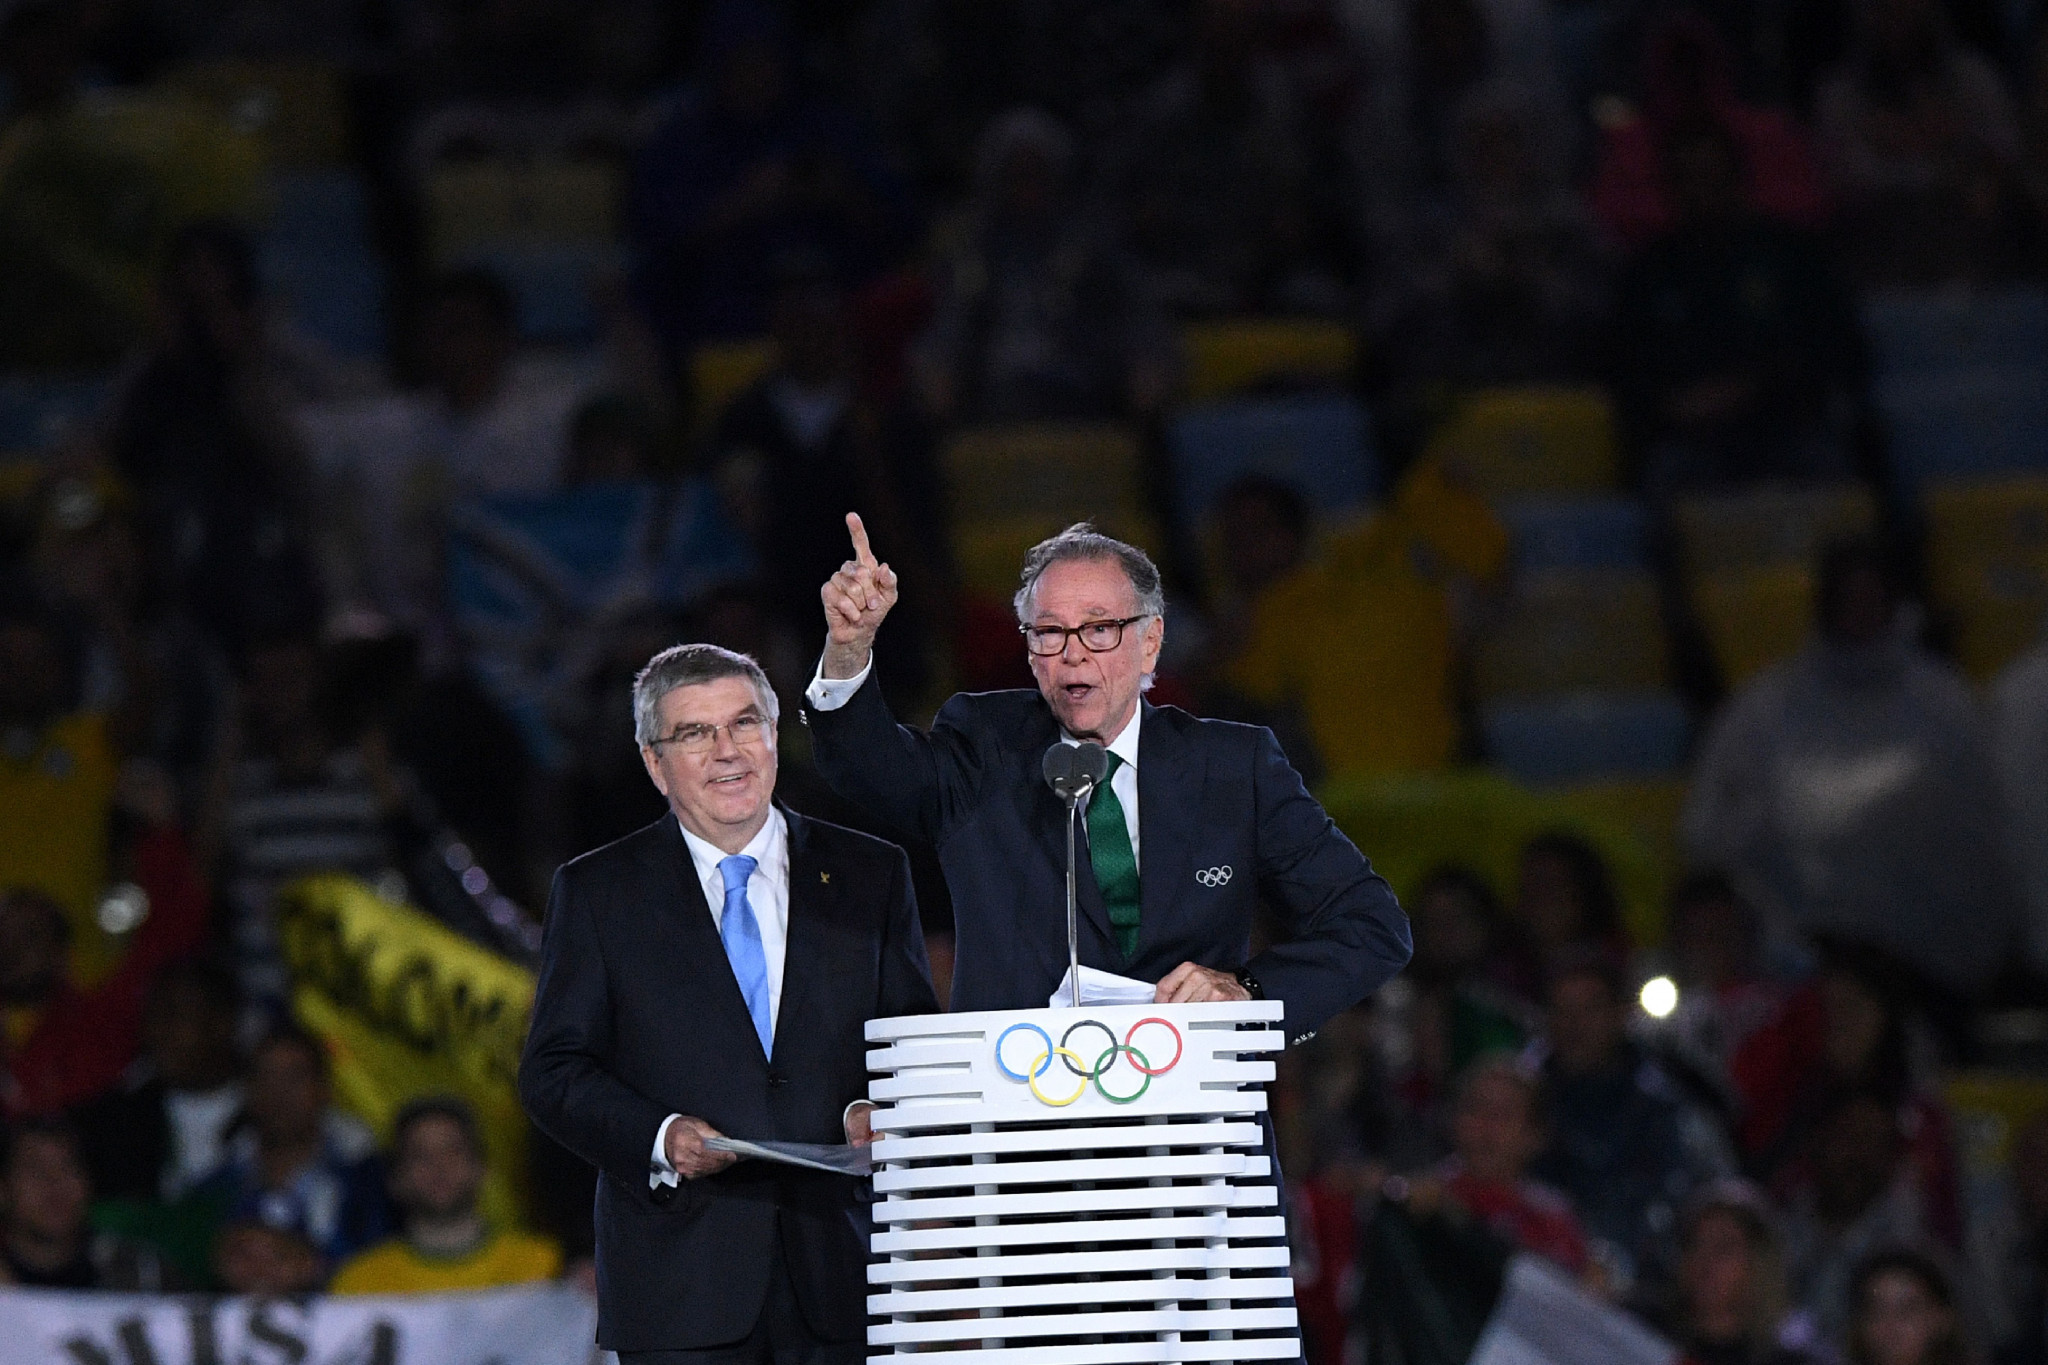 Carlos Nuzman, right, pictured with IOC President Thomas Bach at the Closing Ceremony of last year's Olympics ©Getty Images